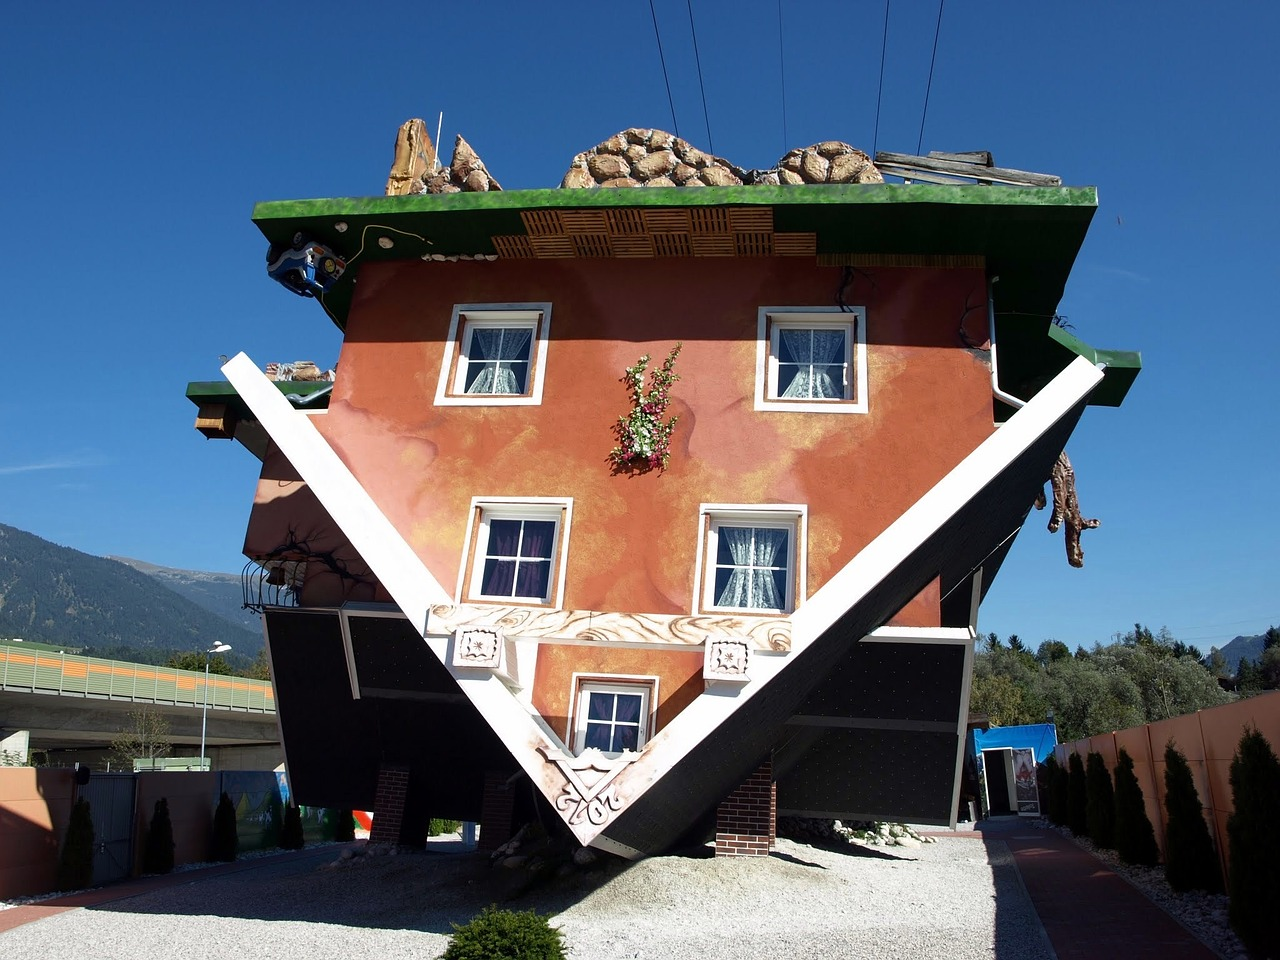 house-is-upside-down-992601_1280